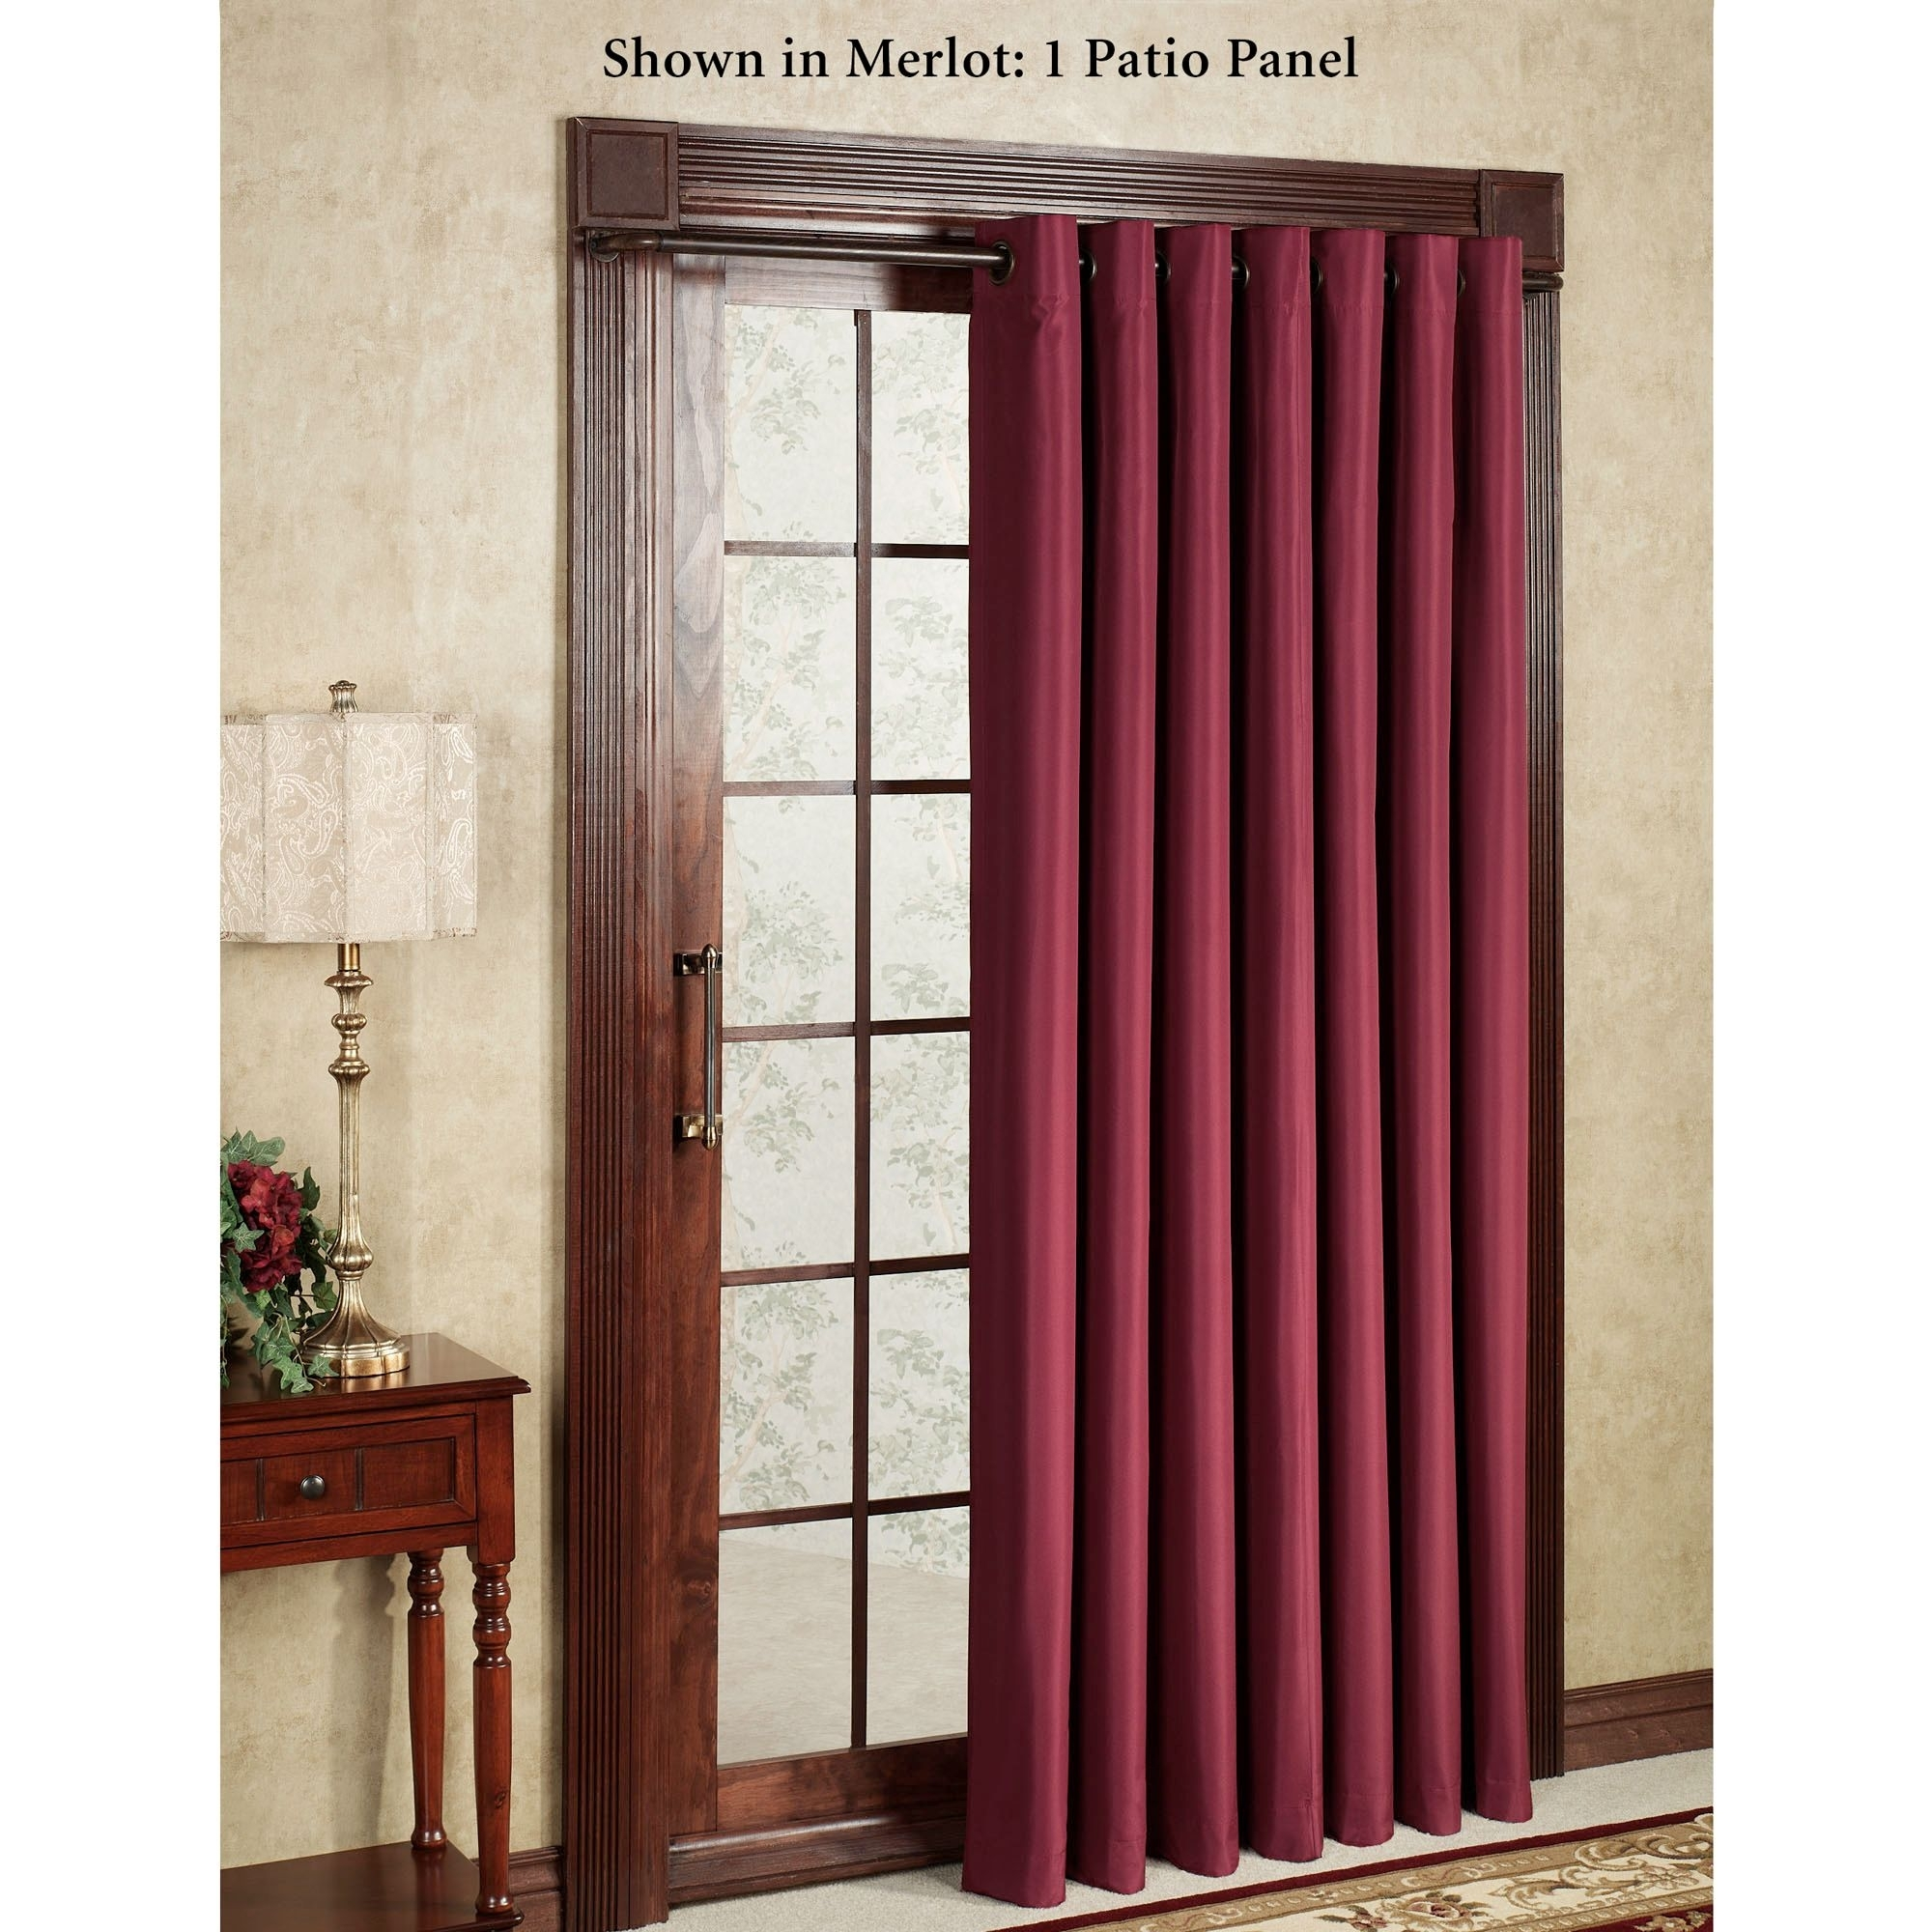 Thermal Lined Drapes Sliding Glass Doors2000 X 2000